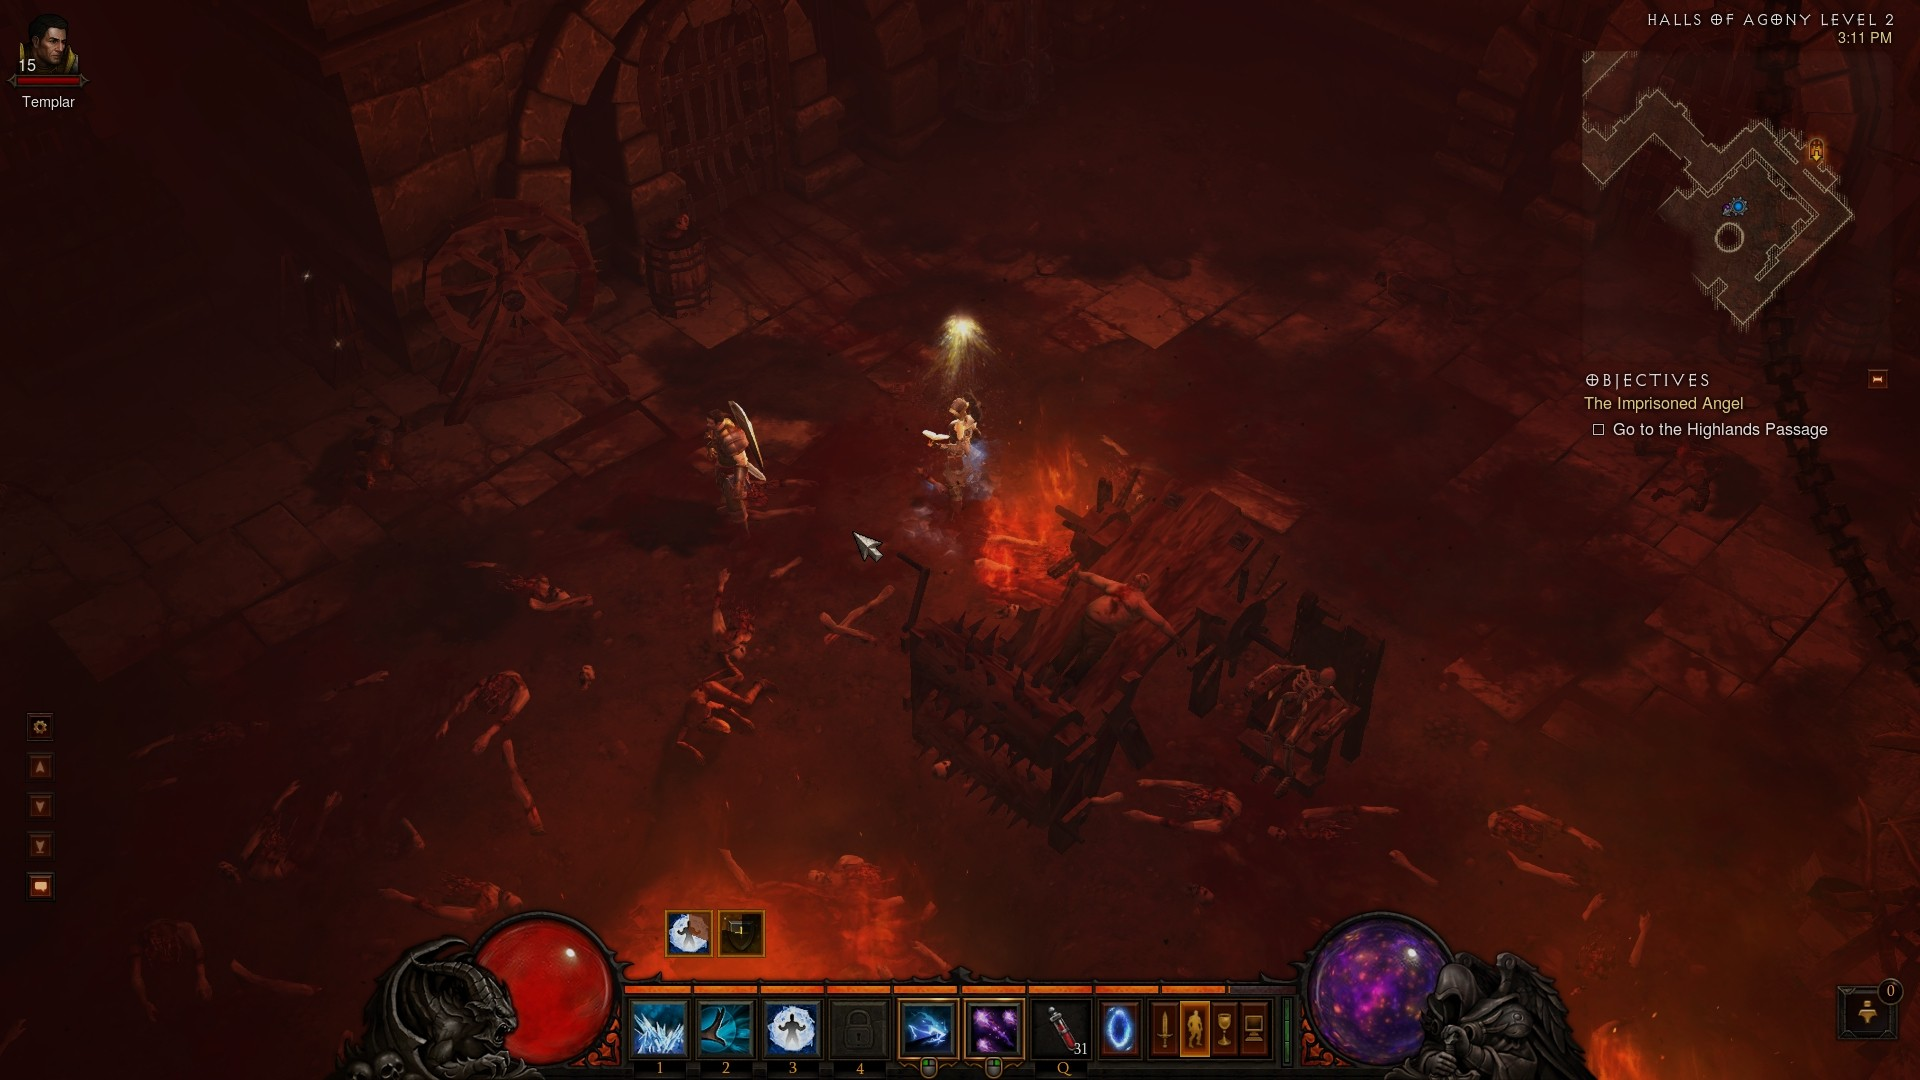 Diablo 3 - Another one! Looks like something right out of WoW, right? Right?